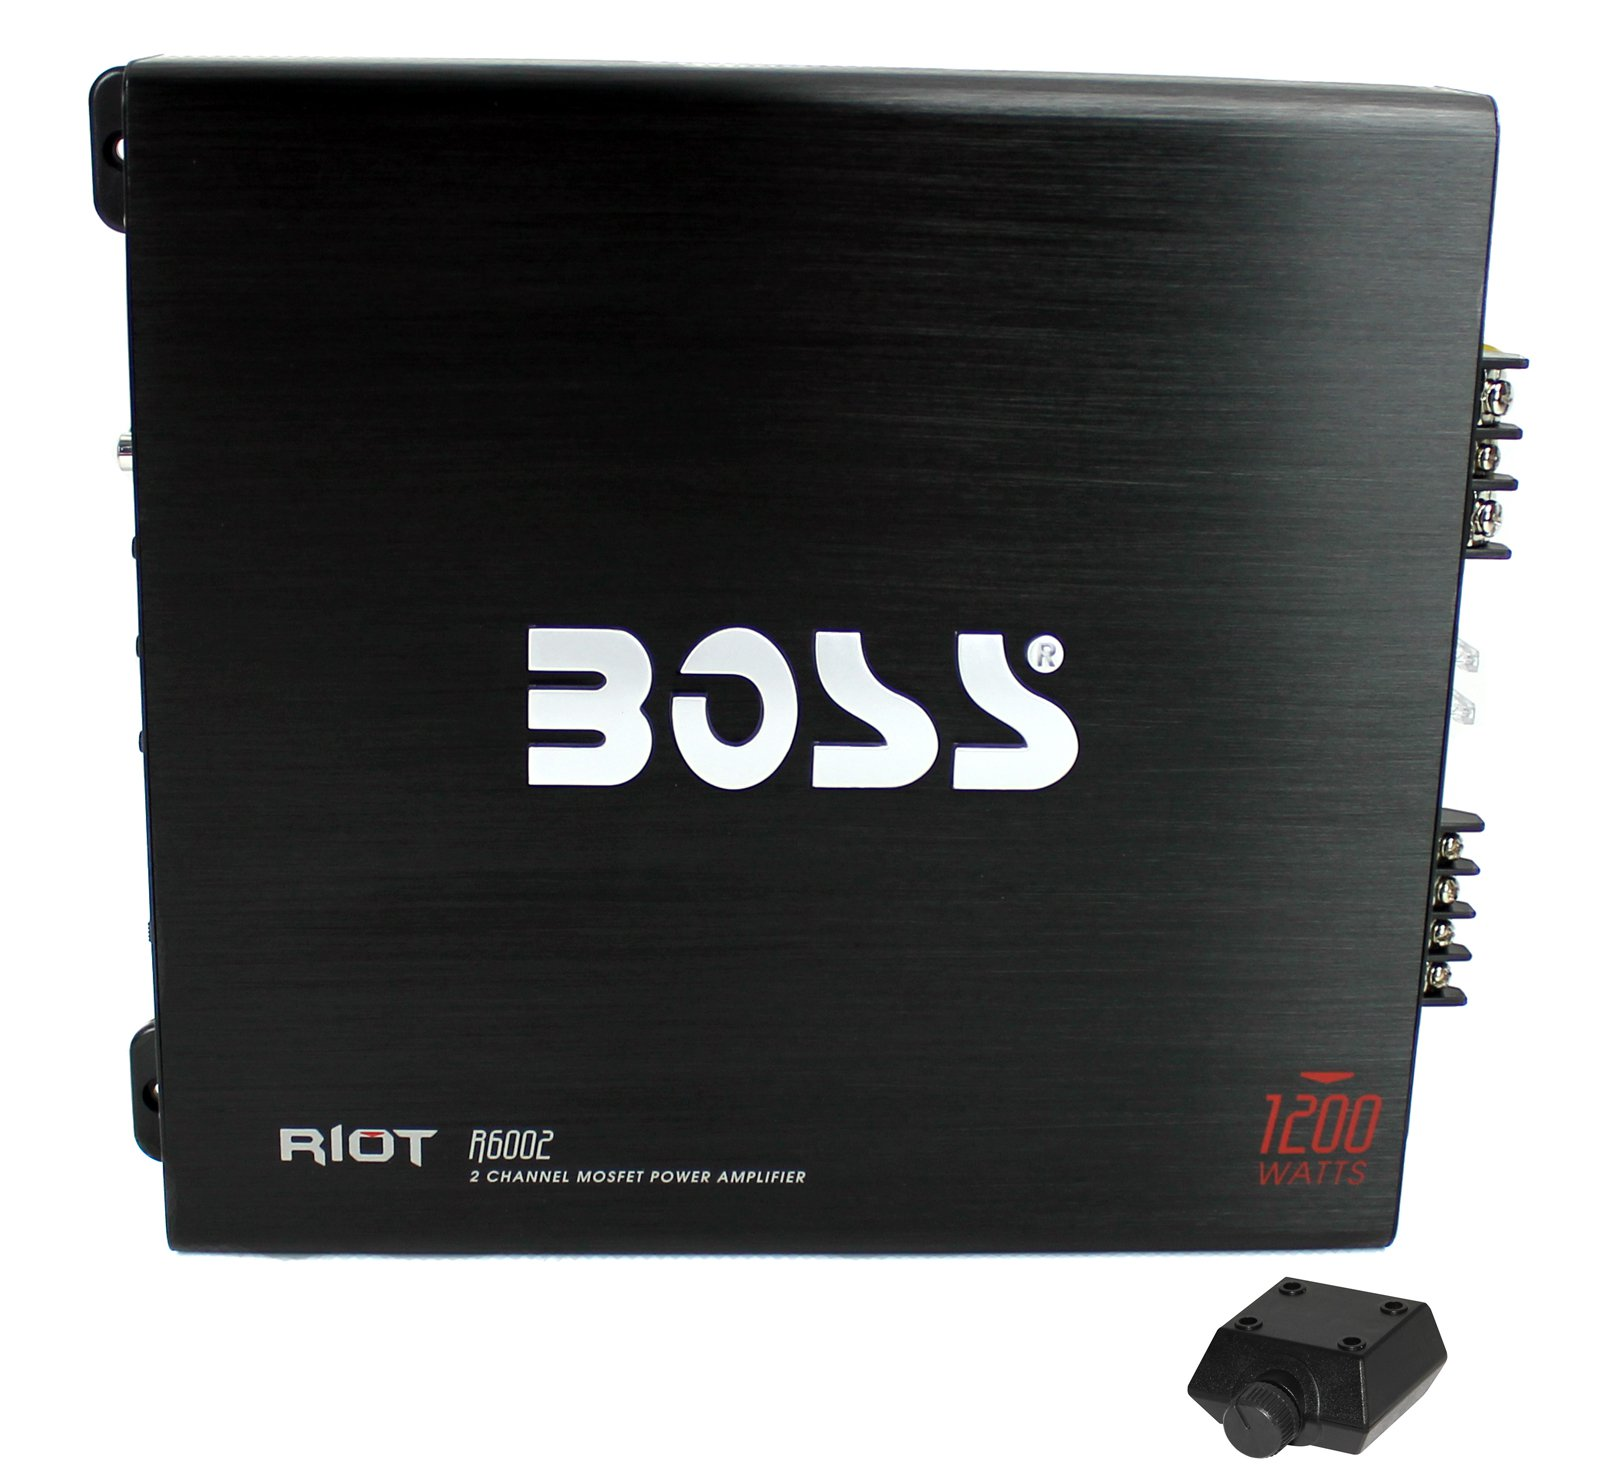 BOSS R6002 1200W 2-Channel MOSFET Power Car Audio Amplifier Amp + Bass Remote